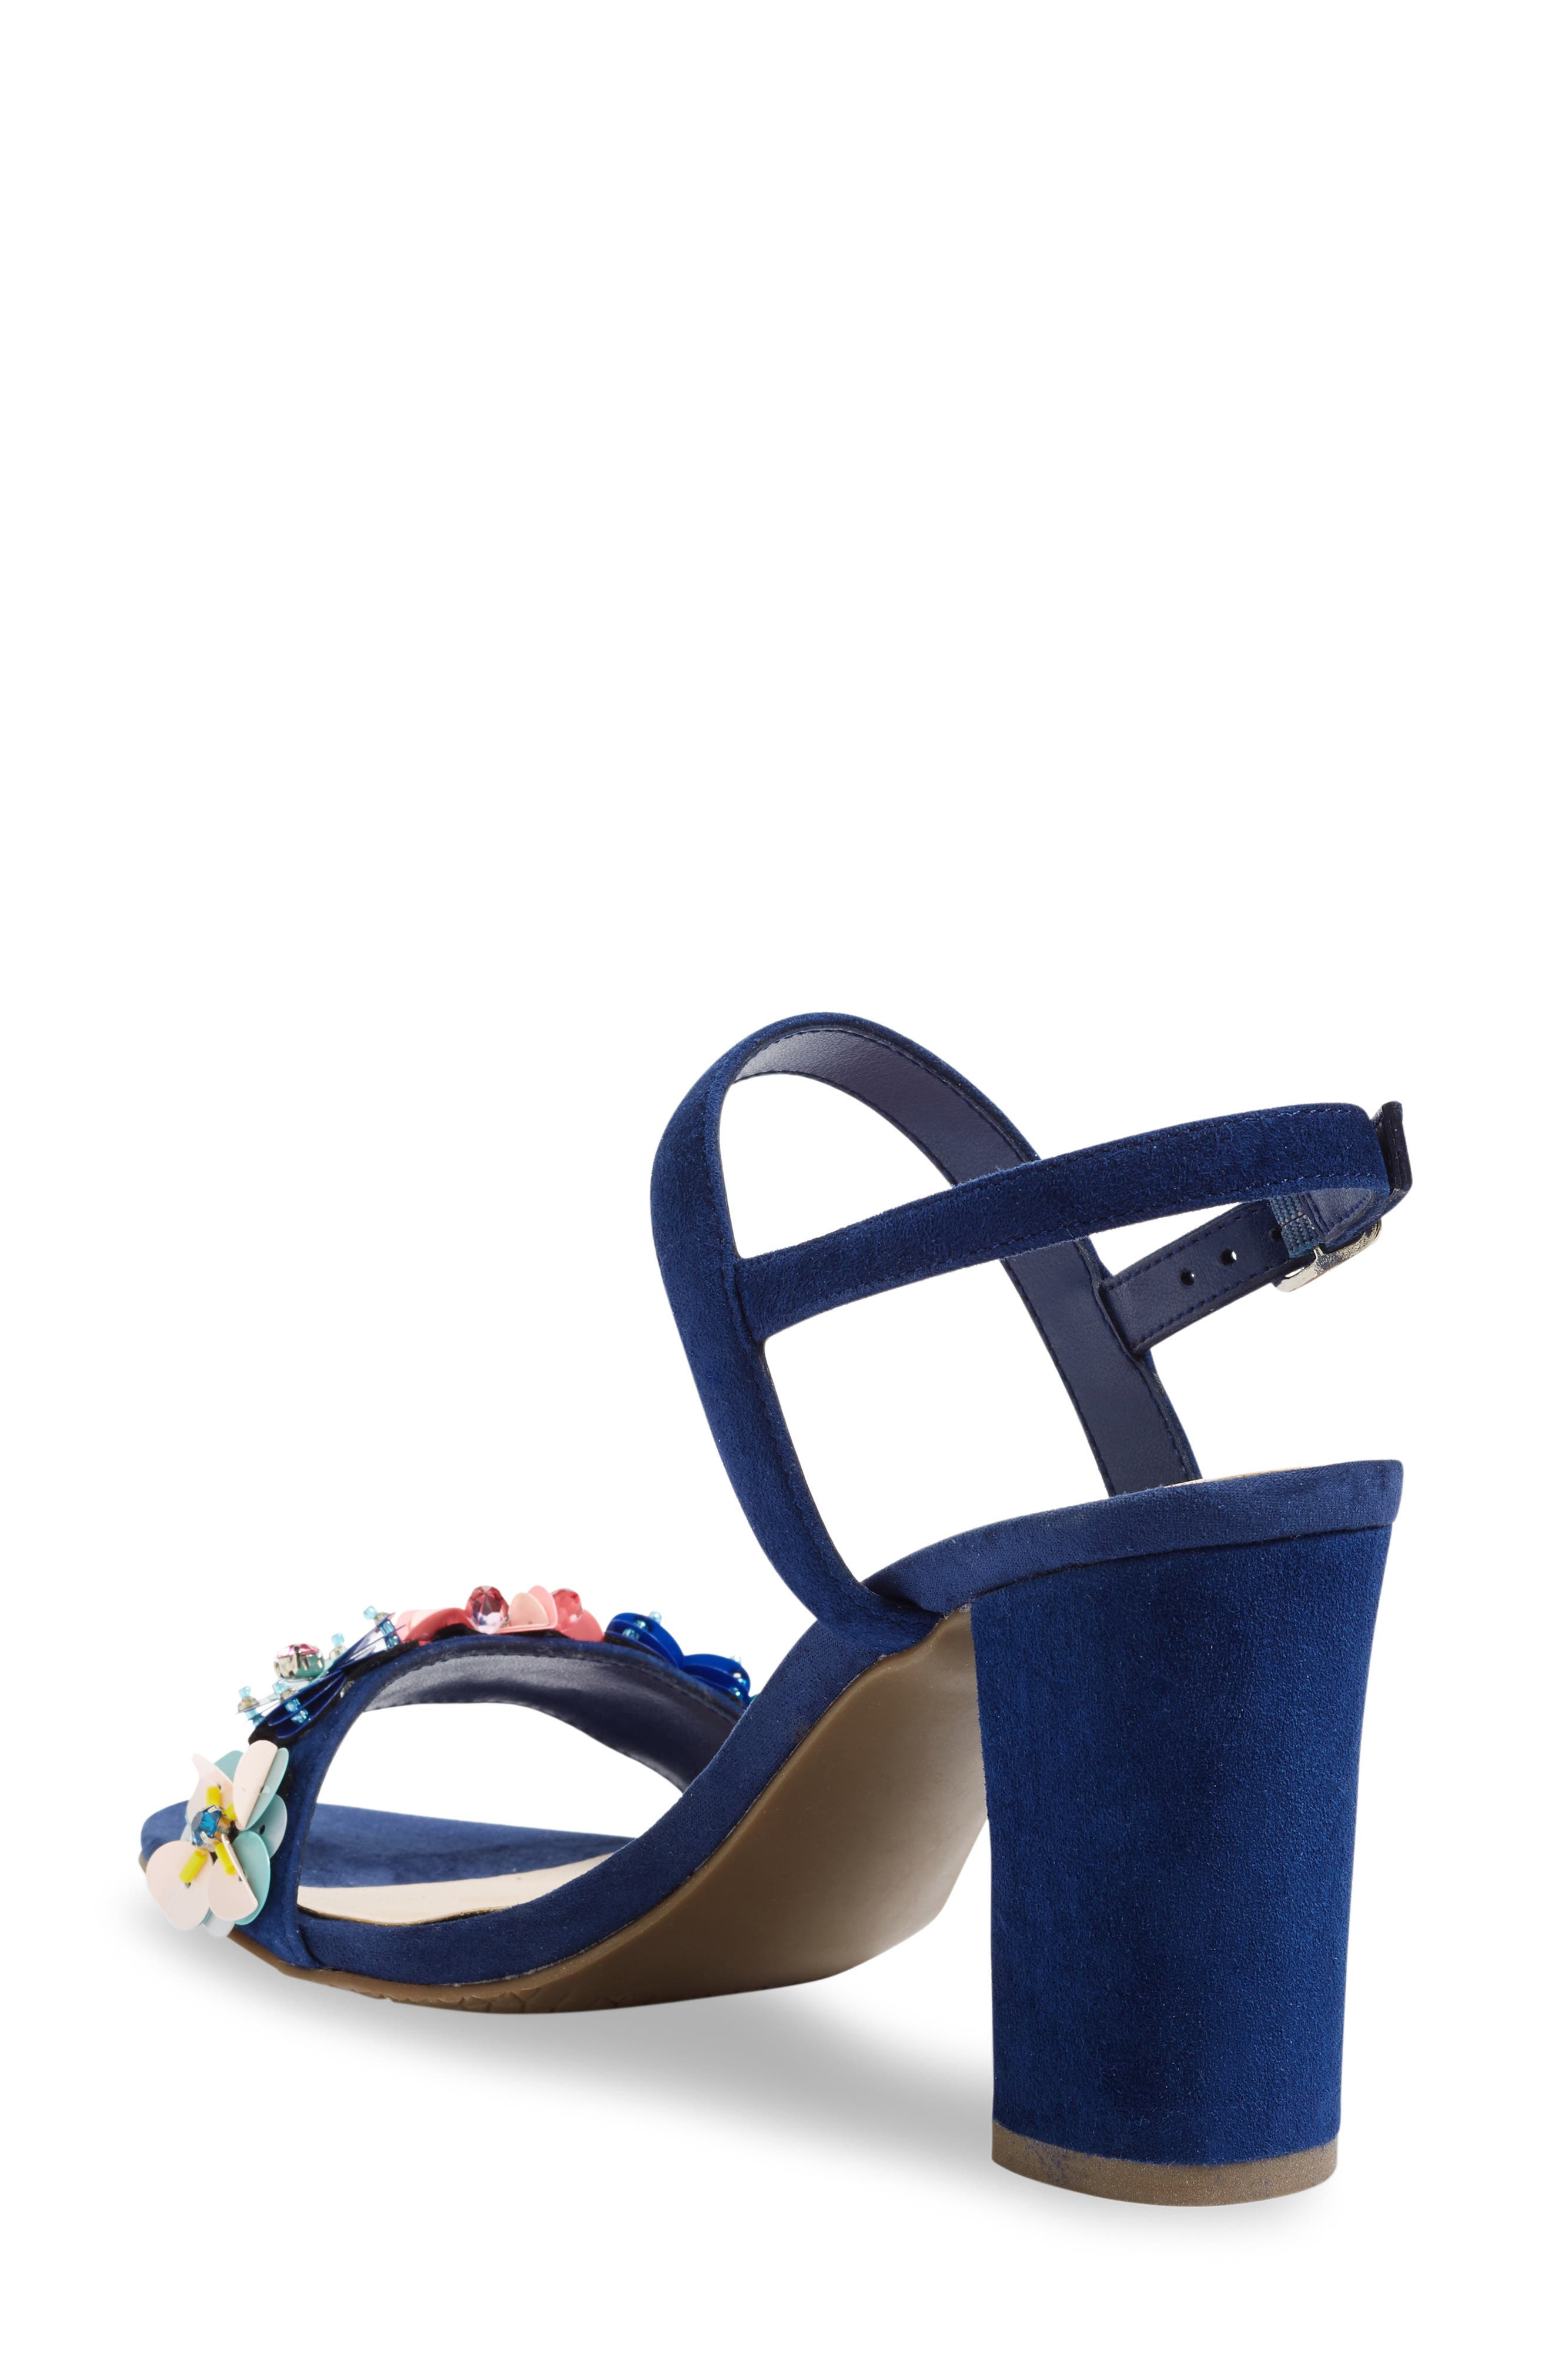 Alternate Image 2  - BP. Lula Block Heel Slingback Sandal (Women)